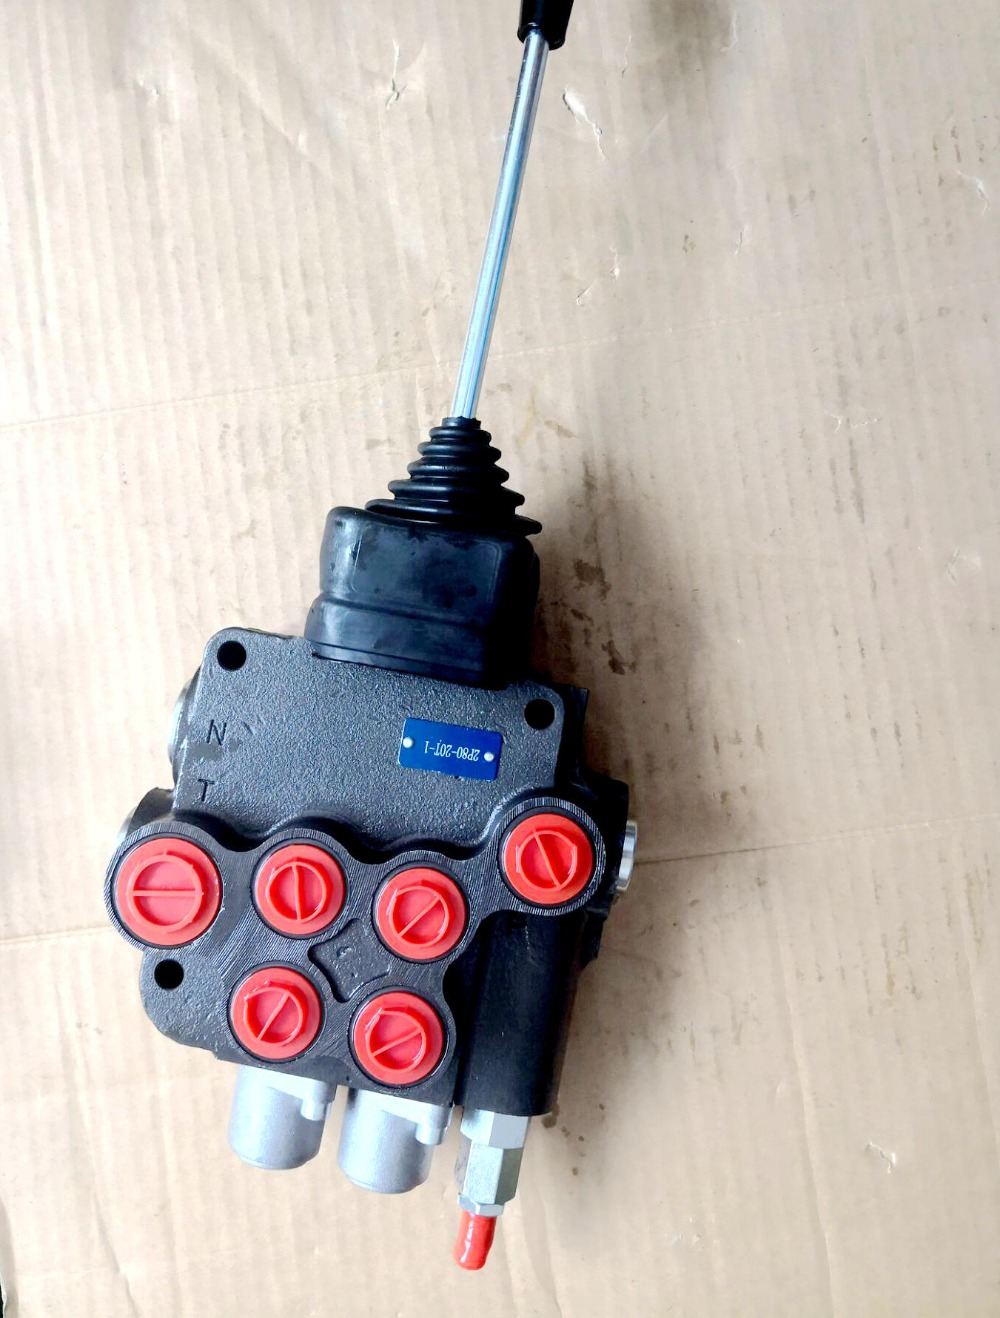 US $131 6 6% OFF 2P80 Joystick Hydraulic Directional Control Valve-in Tool  Parts from Tools on Aliexpress com   Alibaba Group